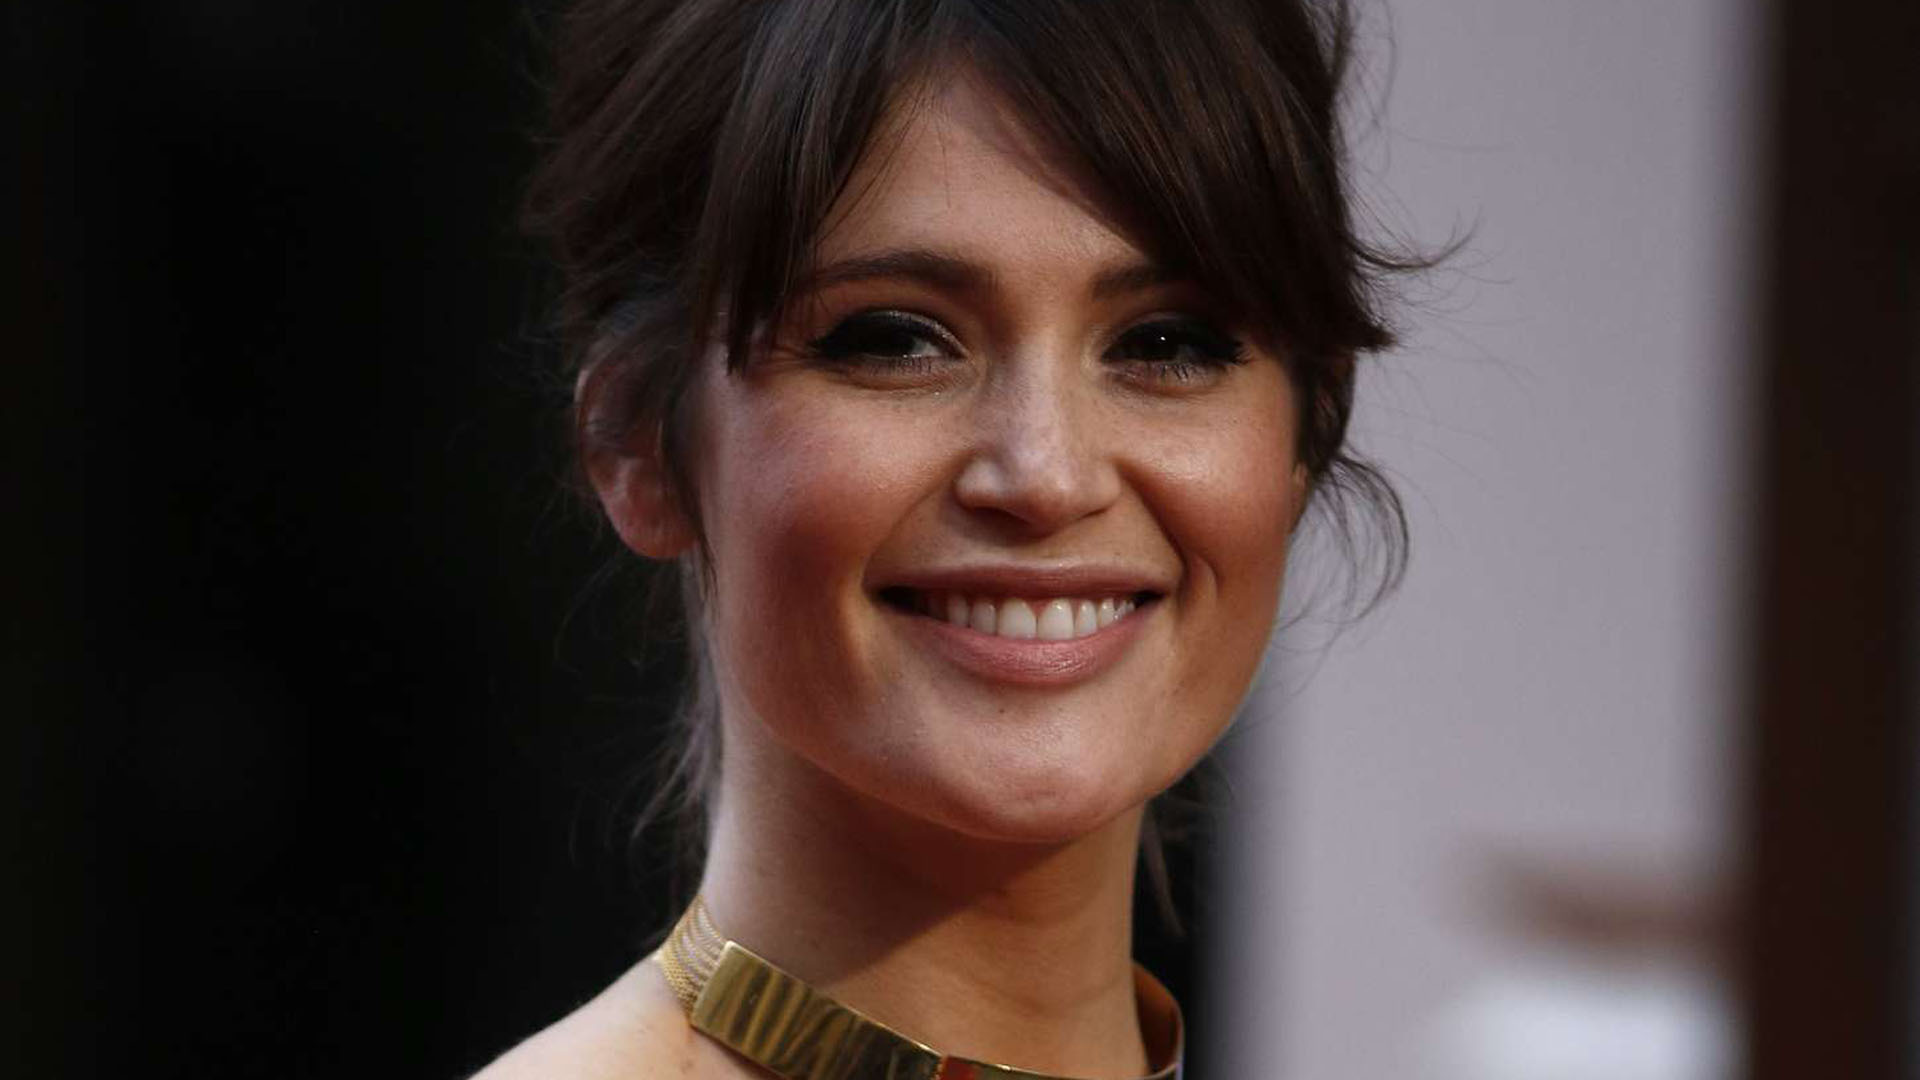 Pictures Of Gemma Arterton